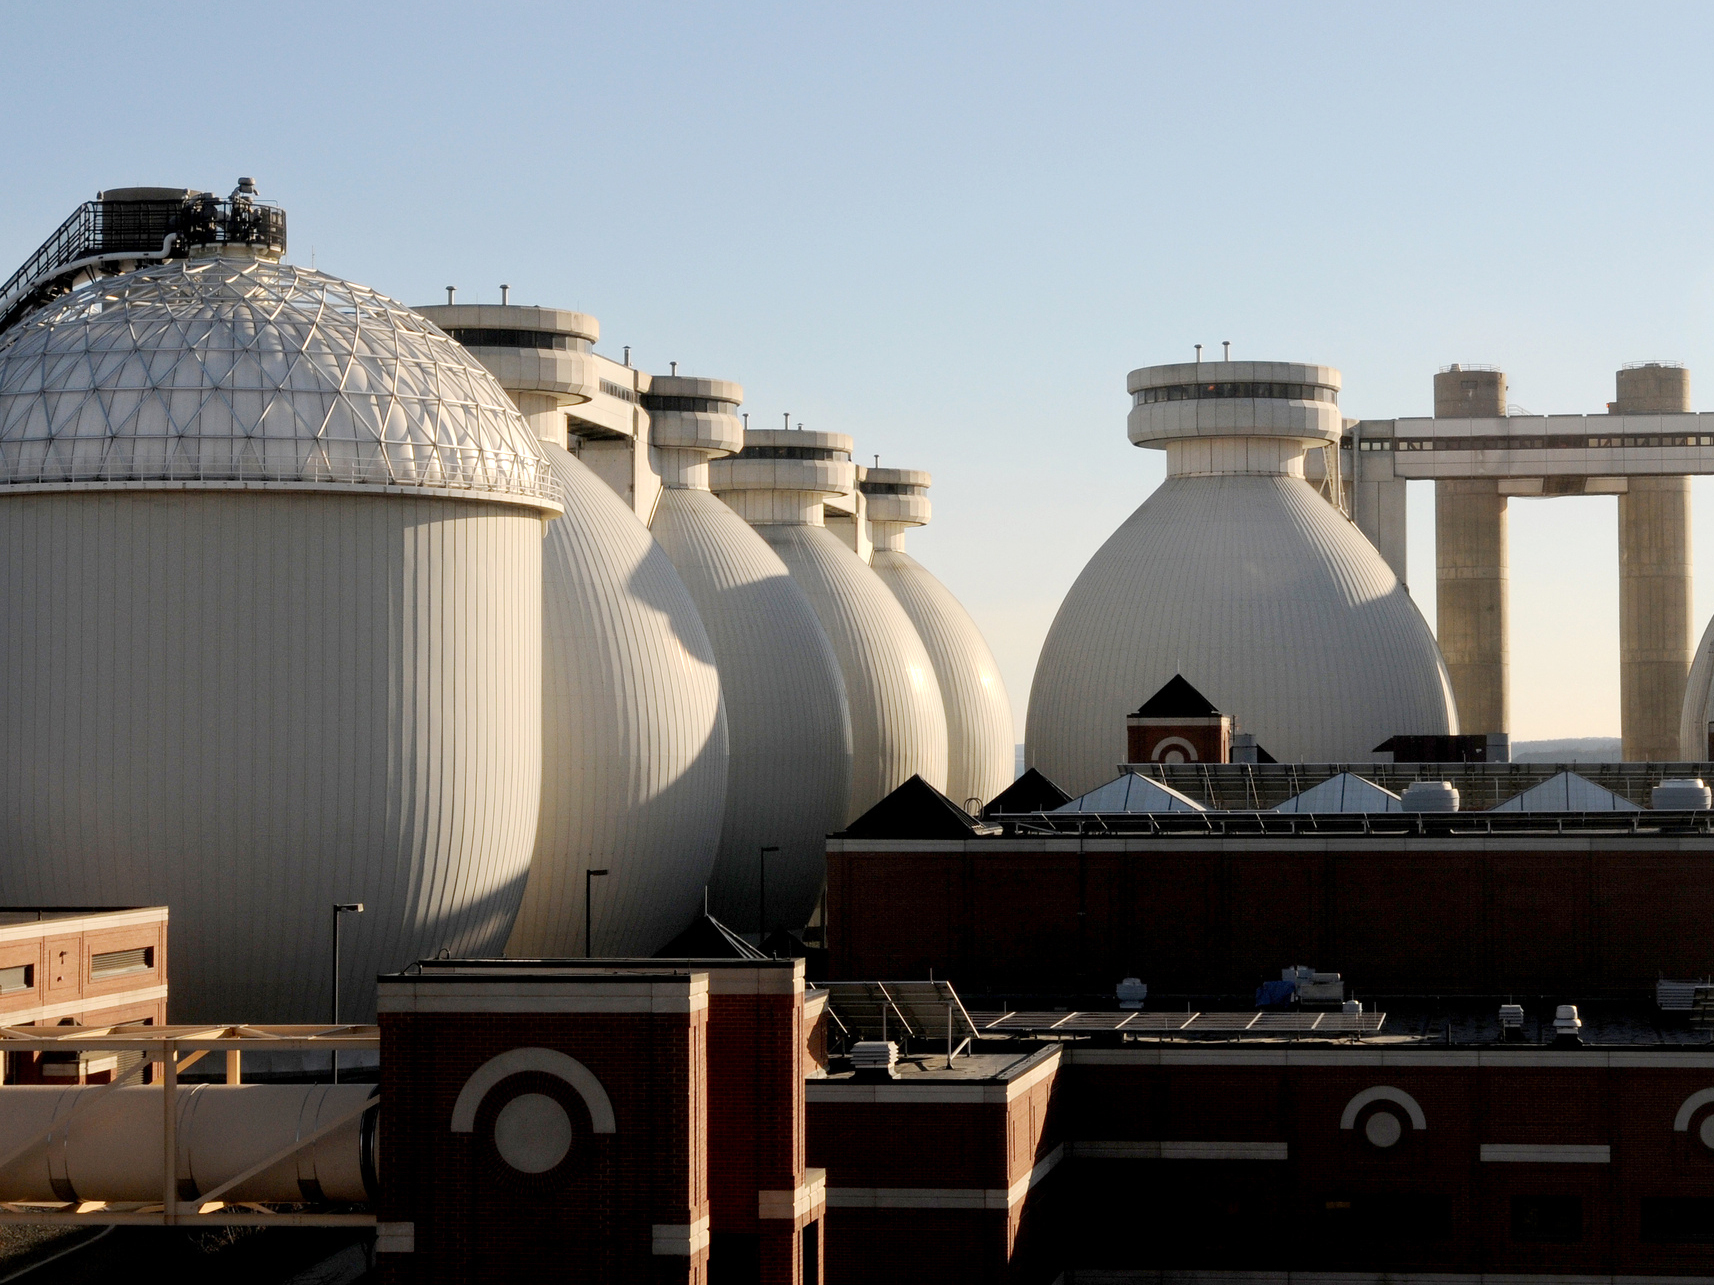 The Massachusetts Water Resources Agency will begin accepting food waste at its Deer Island anaerobic digester near Boston to produce biogas in 2014. Photo: Rachel Schowalter/Massachusetts Clean Energy Center/Flickr